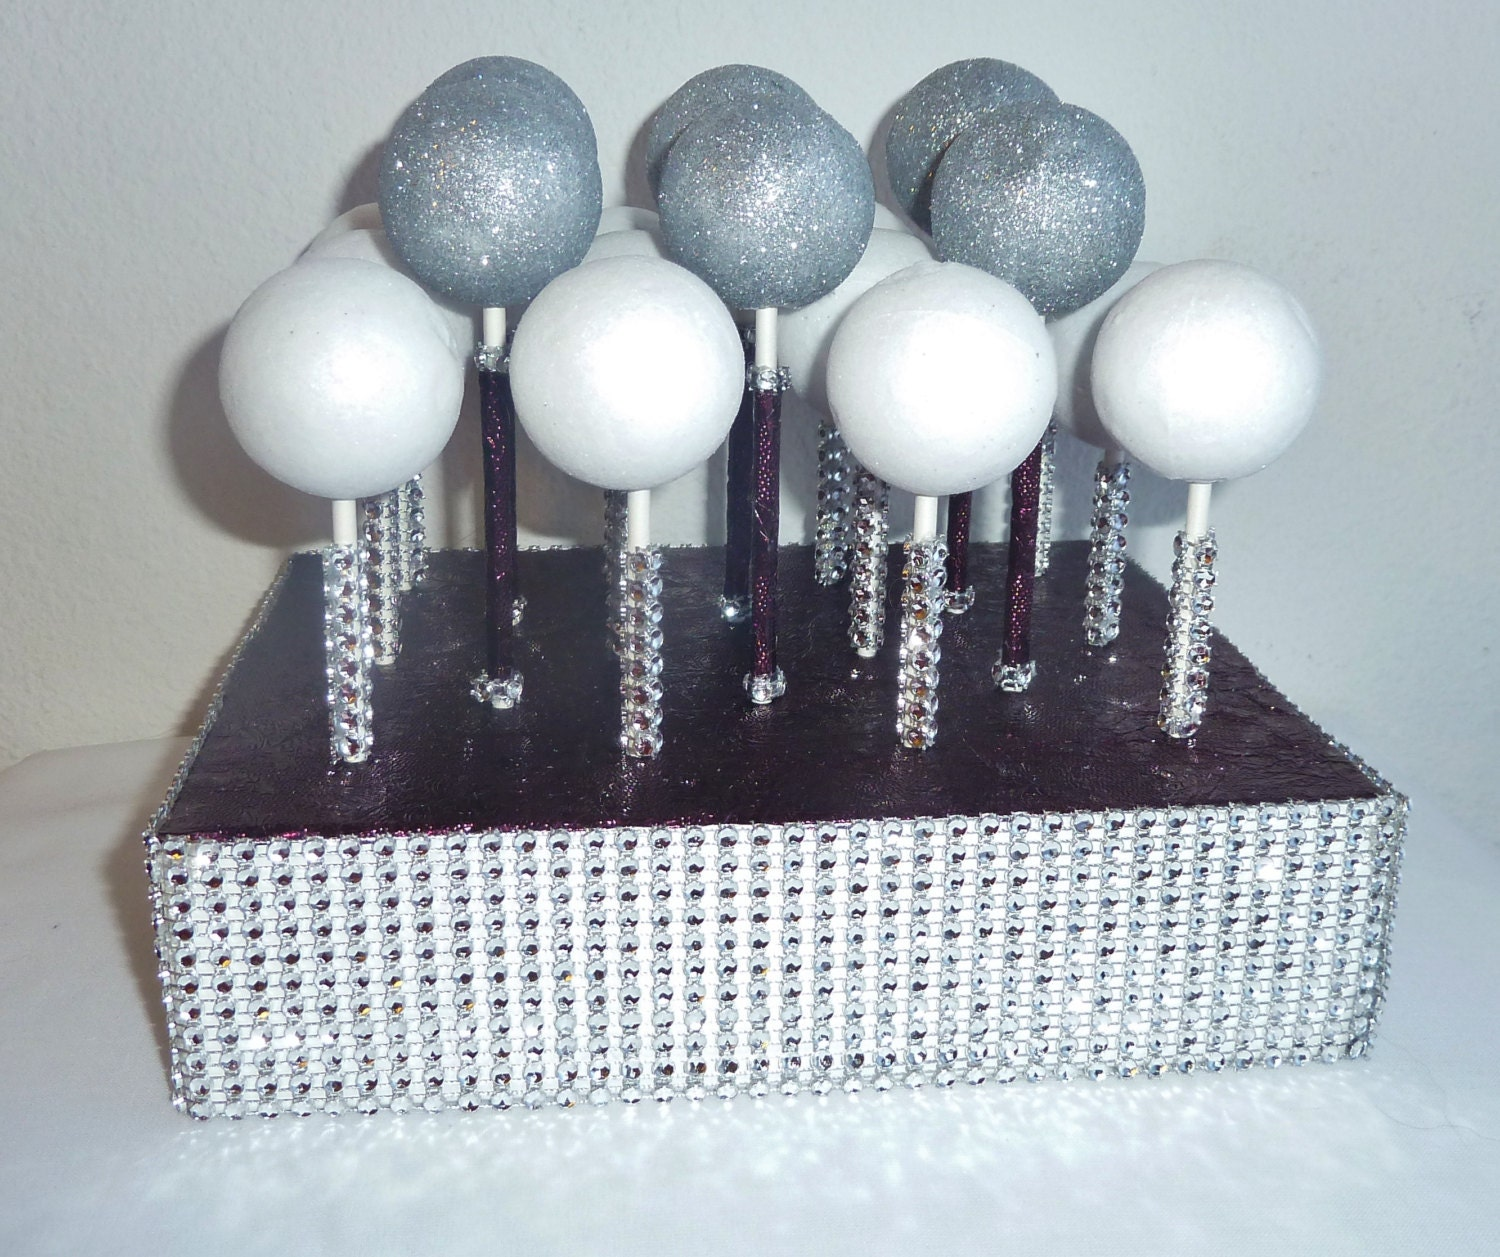 eggplant plum purple bling rhinestone wedding cake pop stand